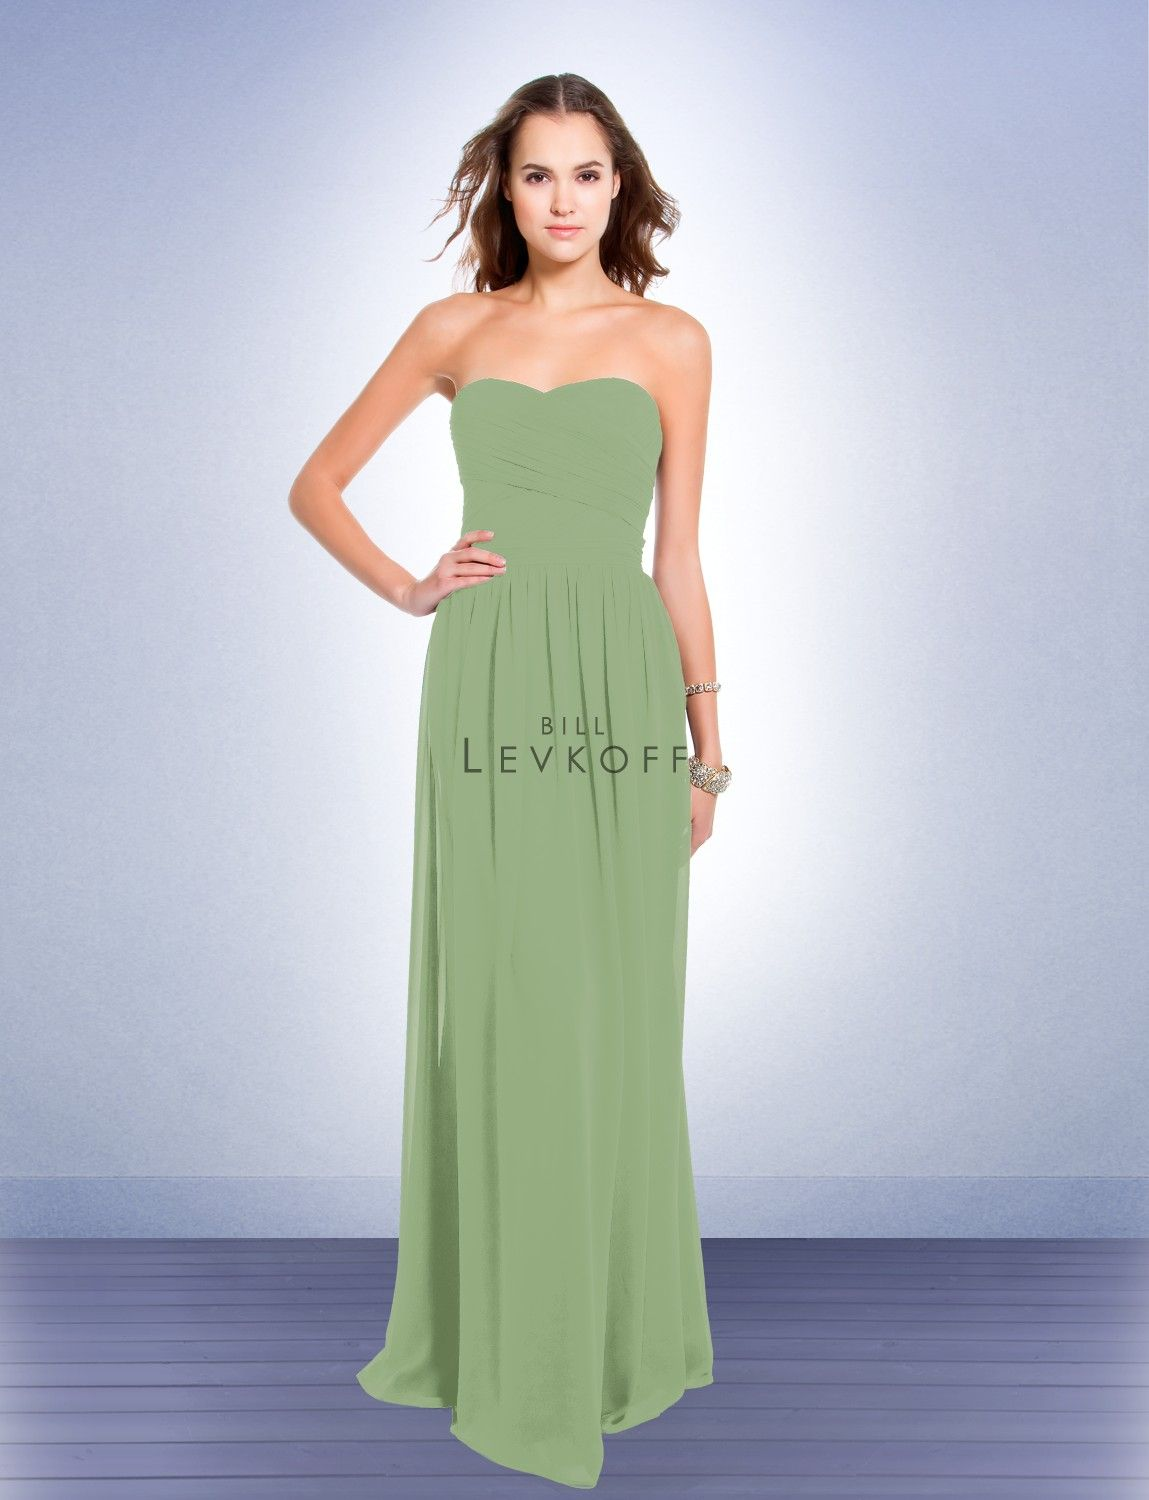 Bridesmaid dress style 193 bill levkoff mohs pistachio bridesmaid dress style 193 bill levkoff mohs pistachio bridesmaids clover ombrellifo Choice Image